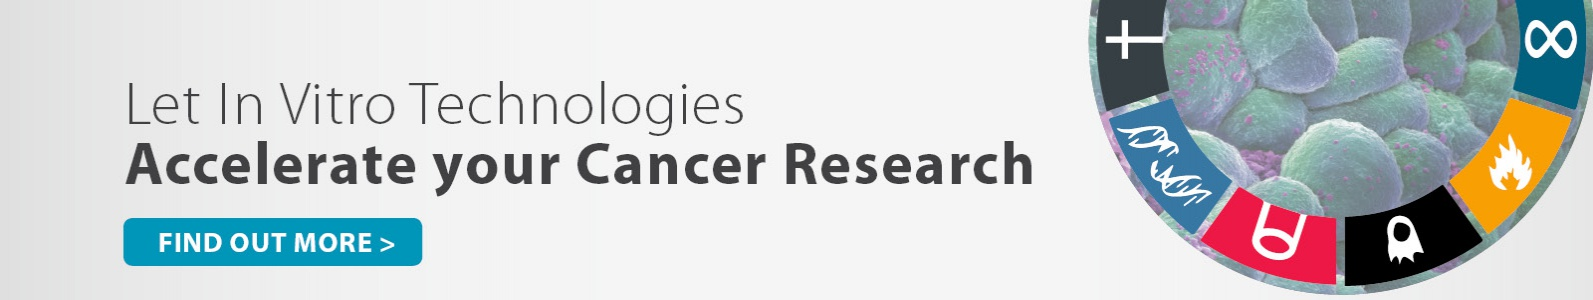 Accelerate Cancer Research 2